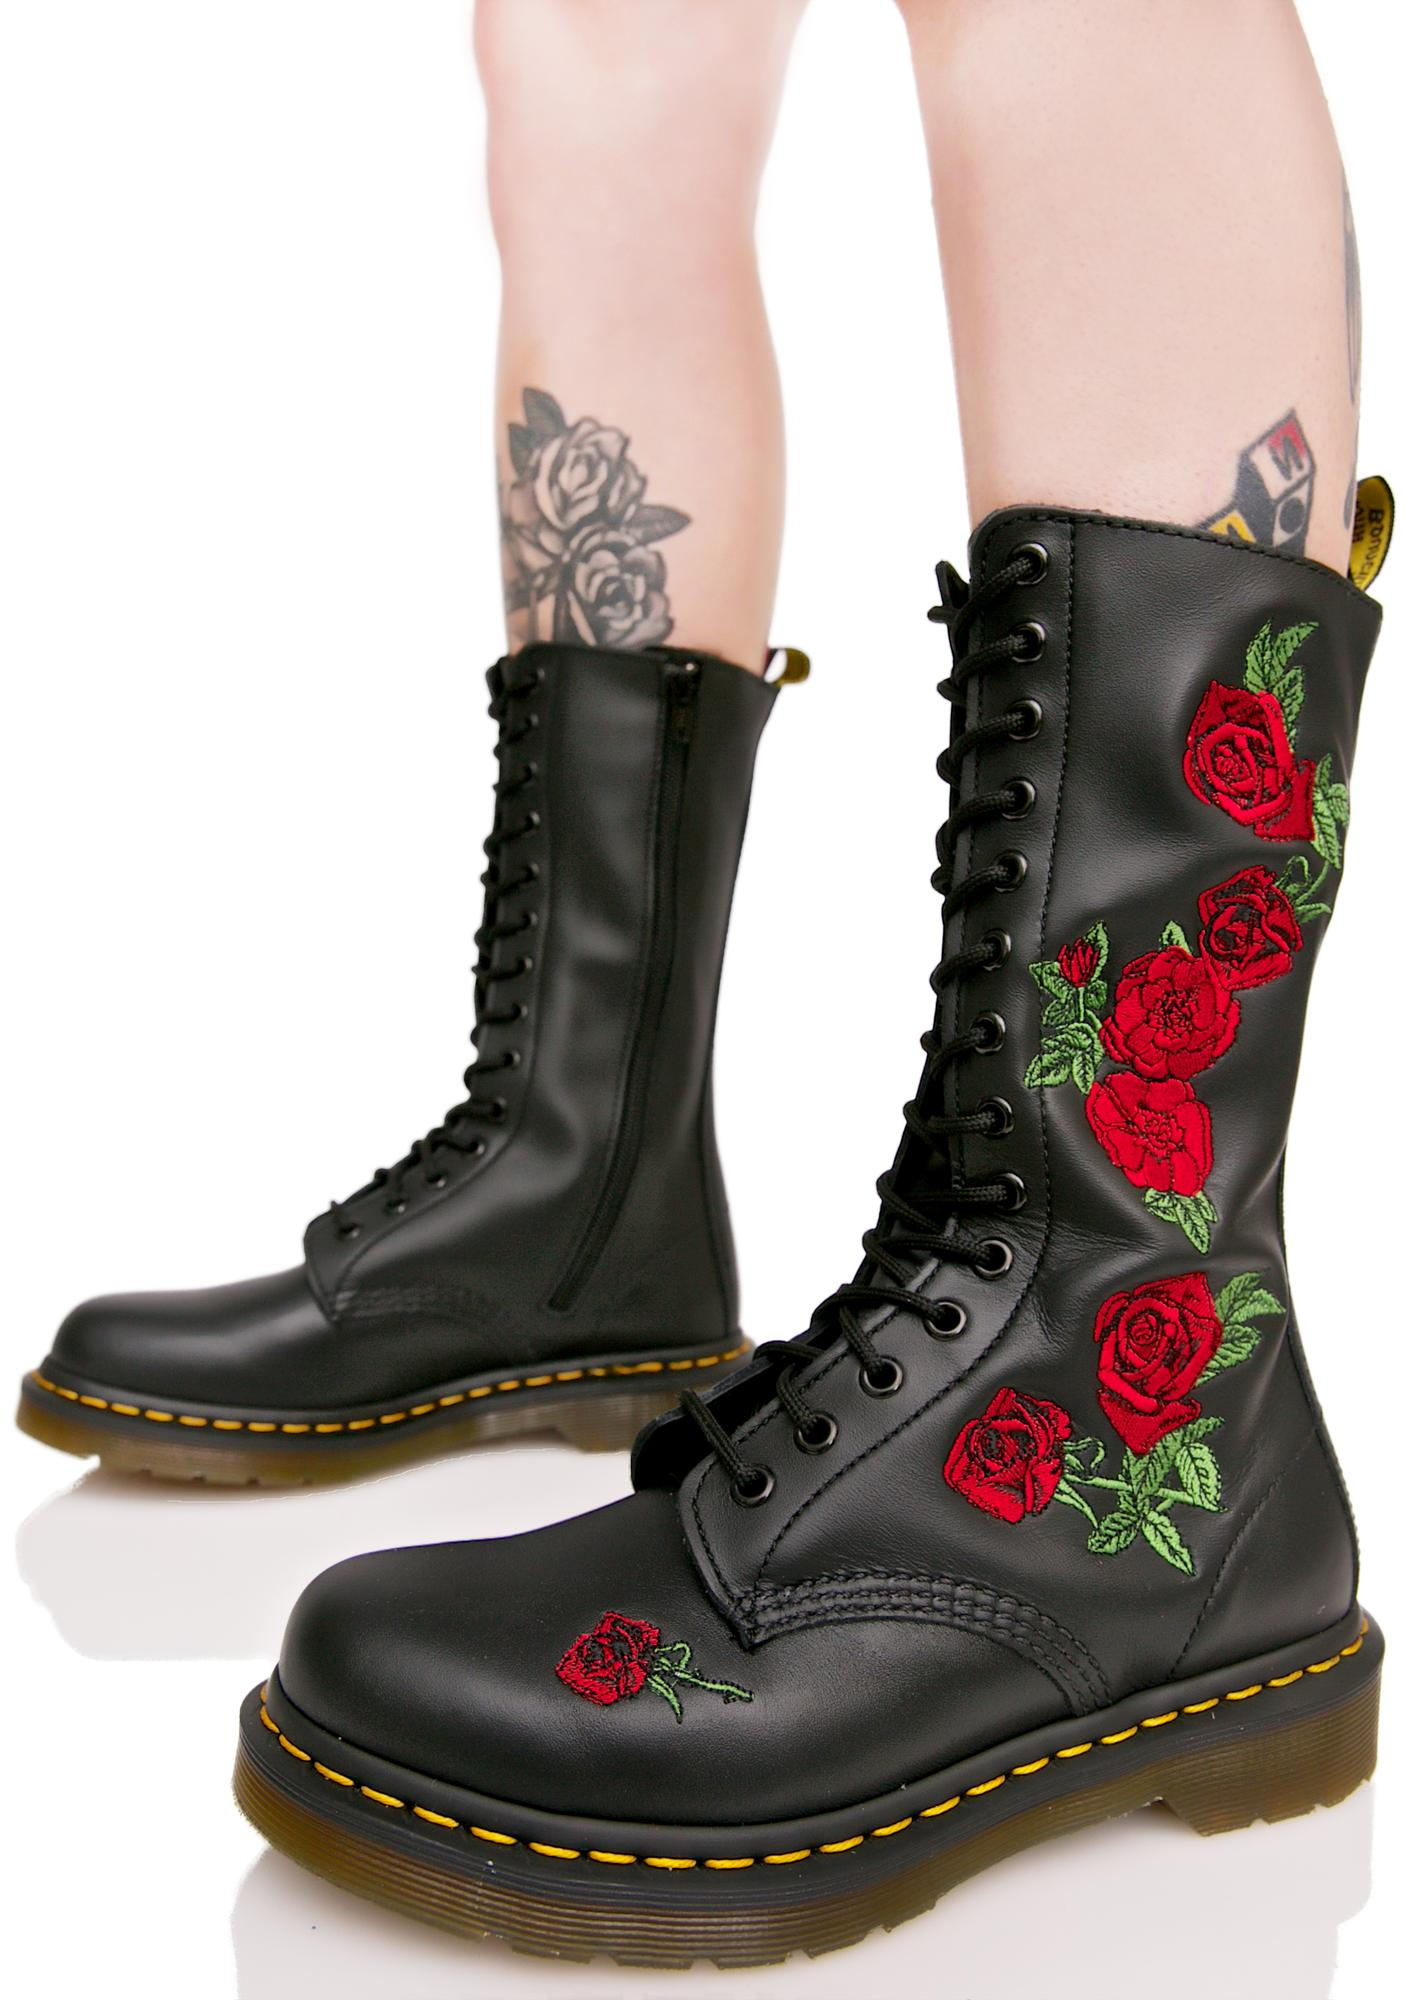 c0c794020d6ae Dr. Martens Vonda Embroidered 14 Eye Boots